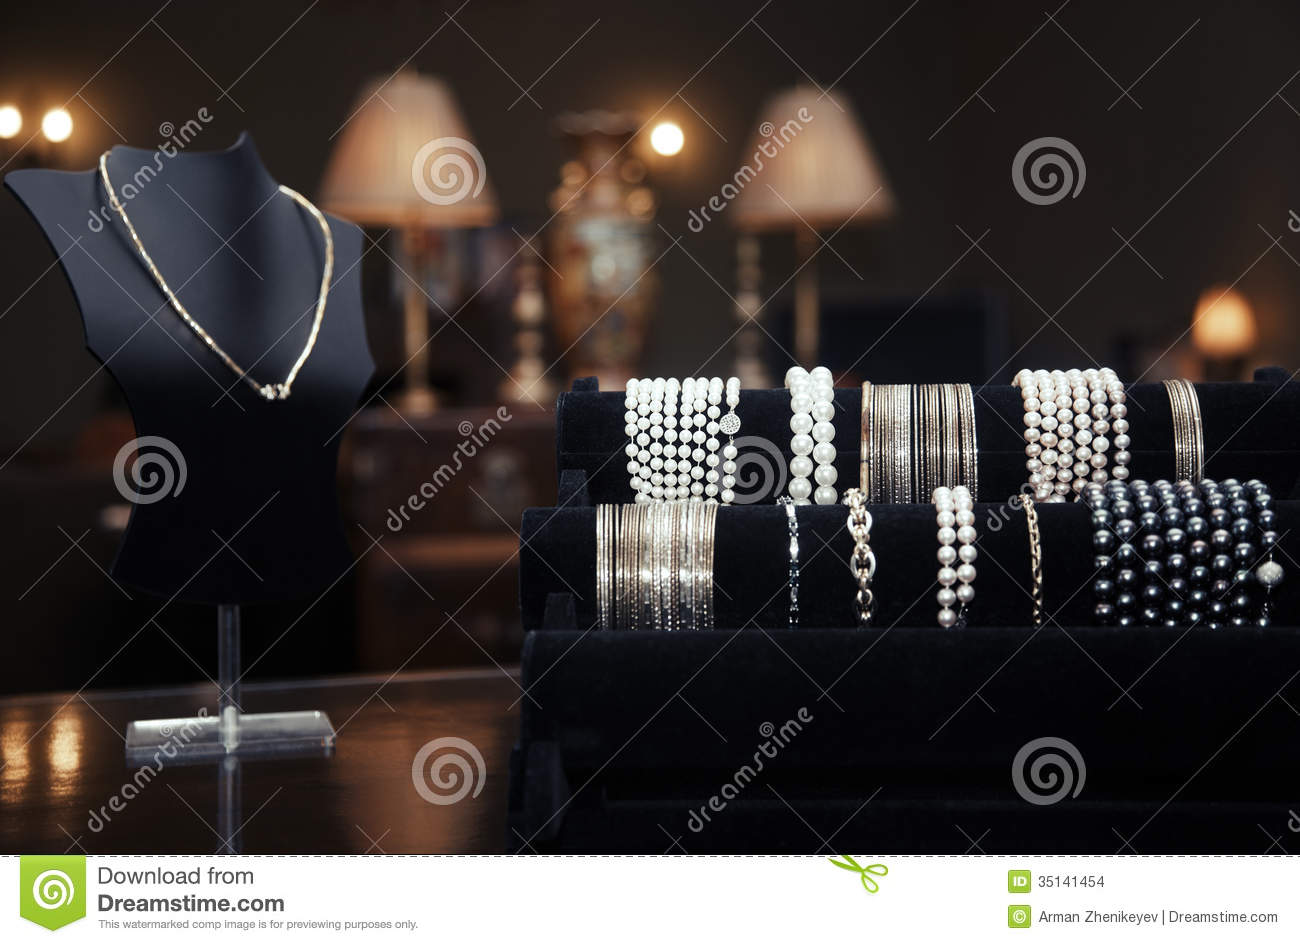 jewelry shop in tunis stock photo 44745528. Black Bedroom Furniture Sets. Home Design Ideas